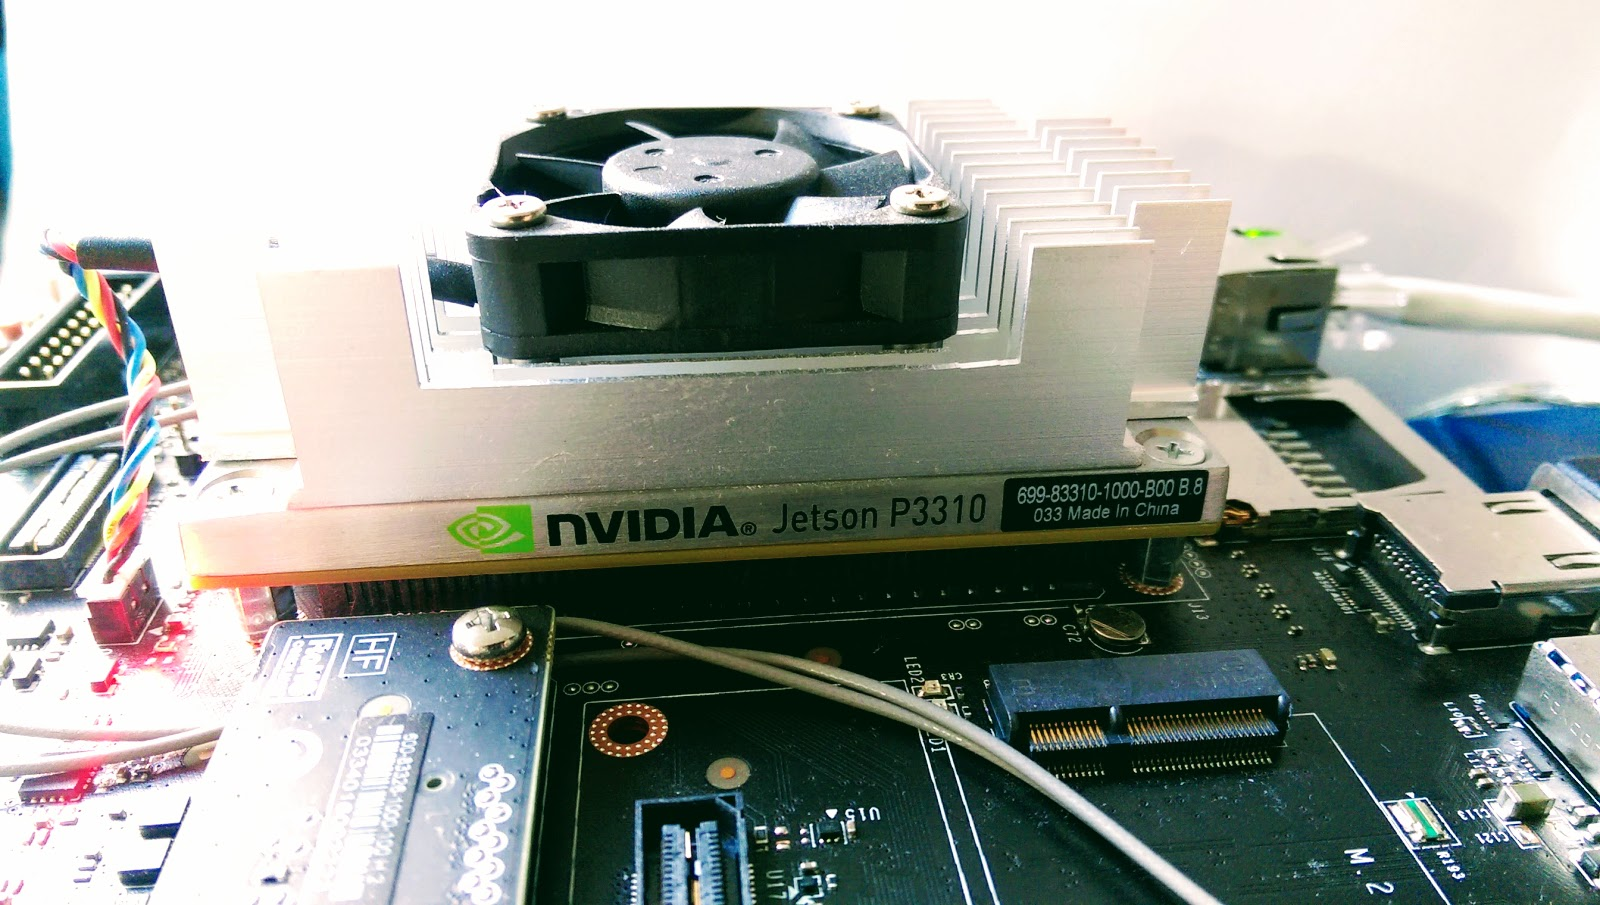 How to install JetPack 3 1 on Nvidia Jetson TX2 | My Public